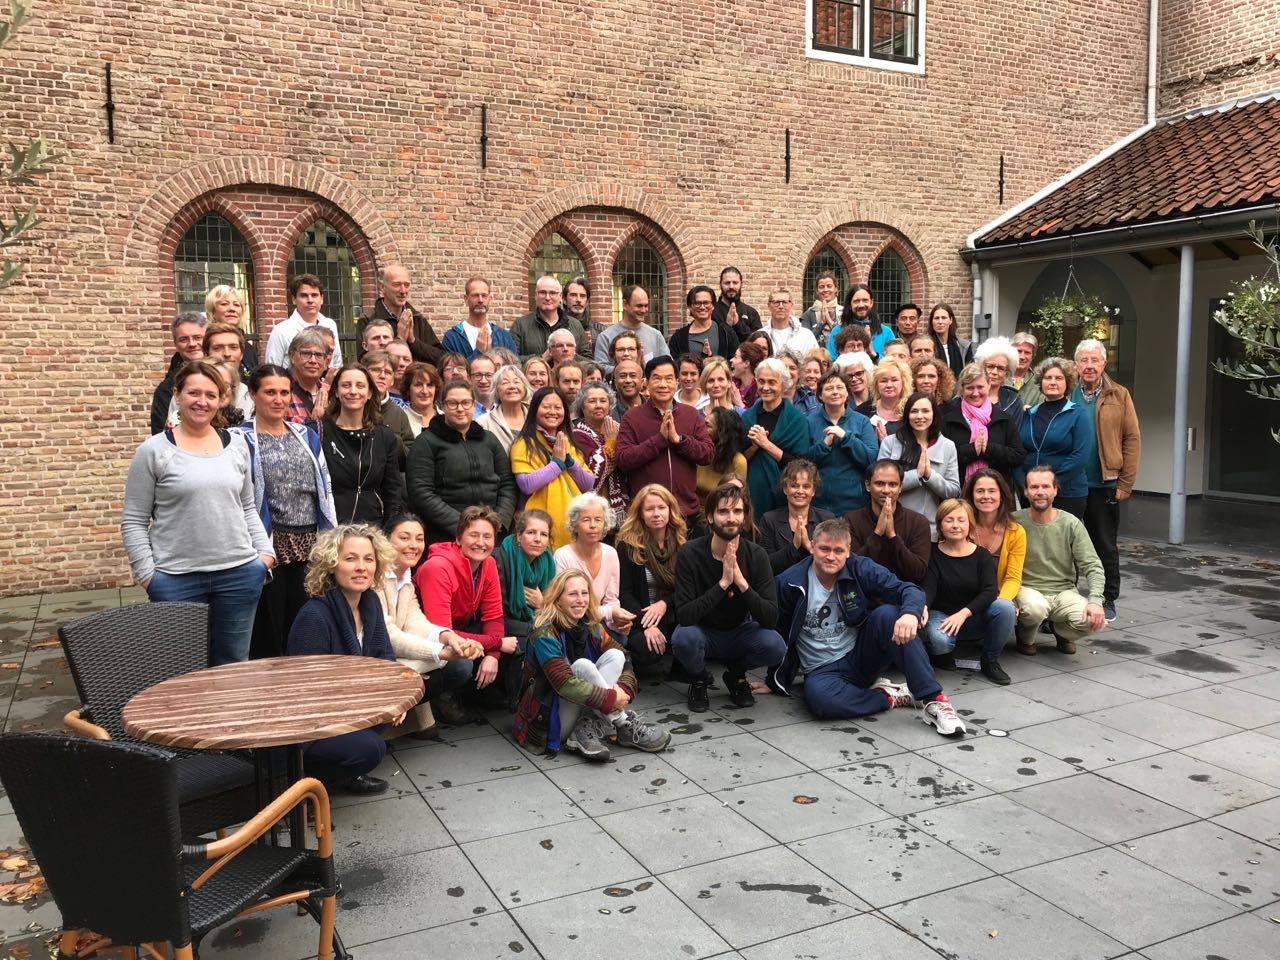 Group of students in Amersfoort, Netherlands – European Fall 2017